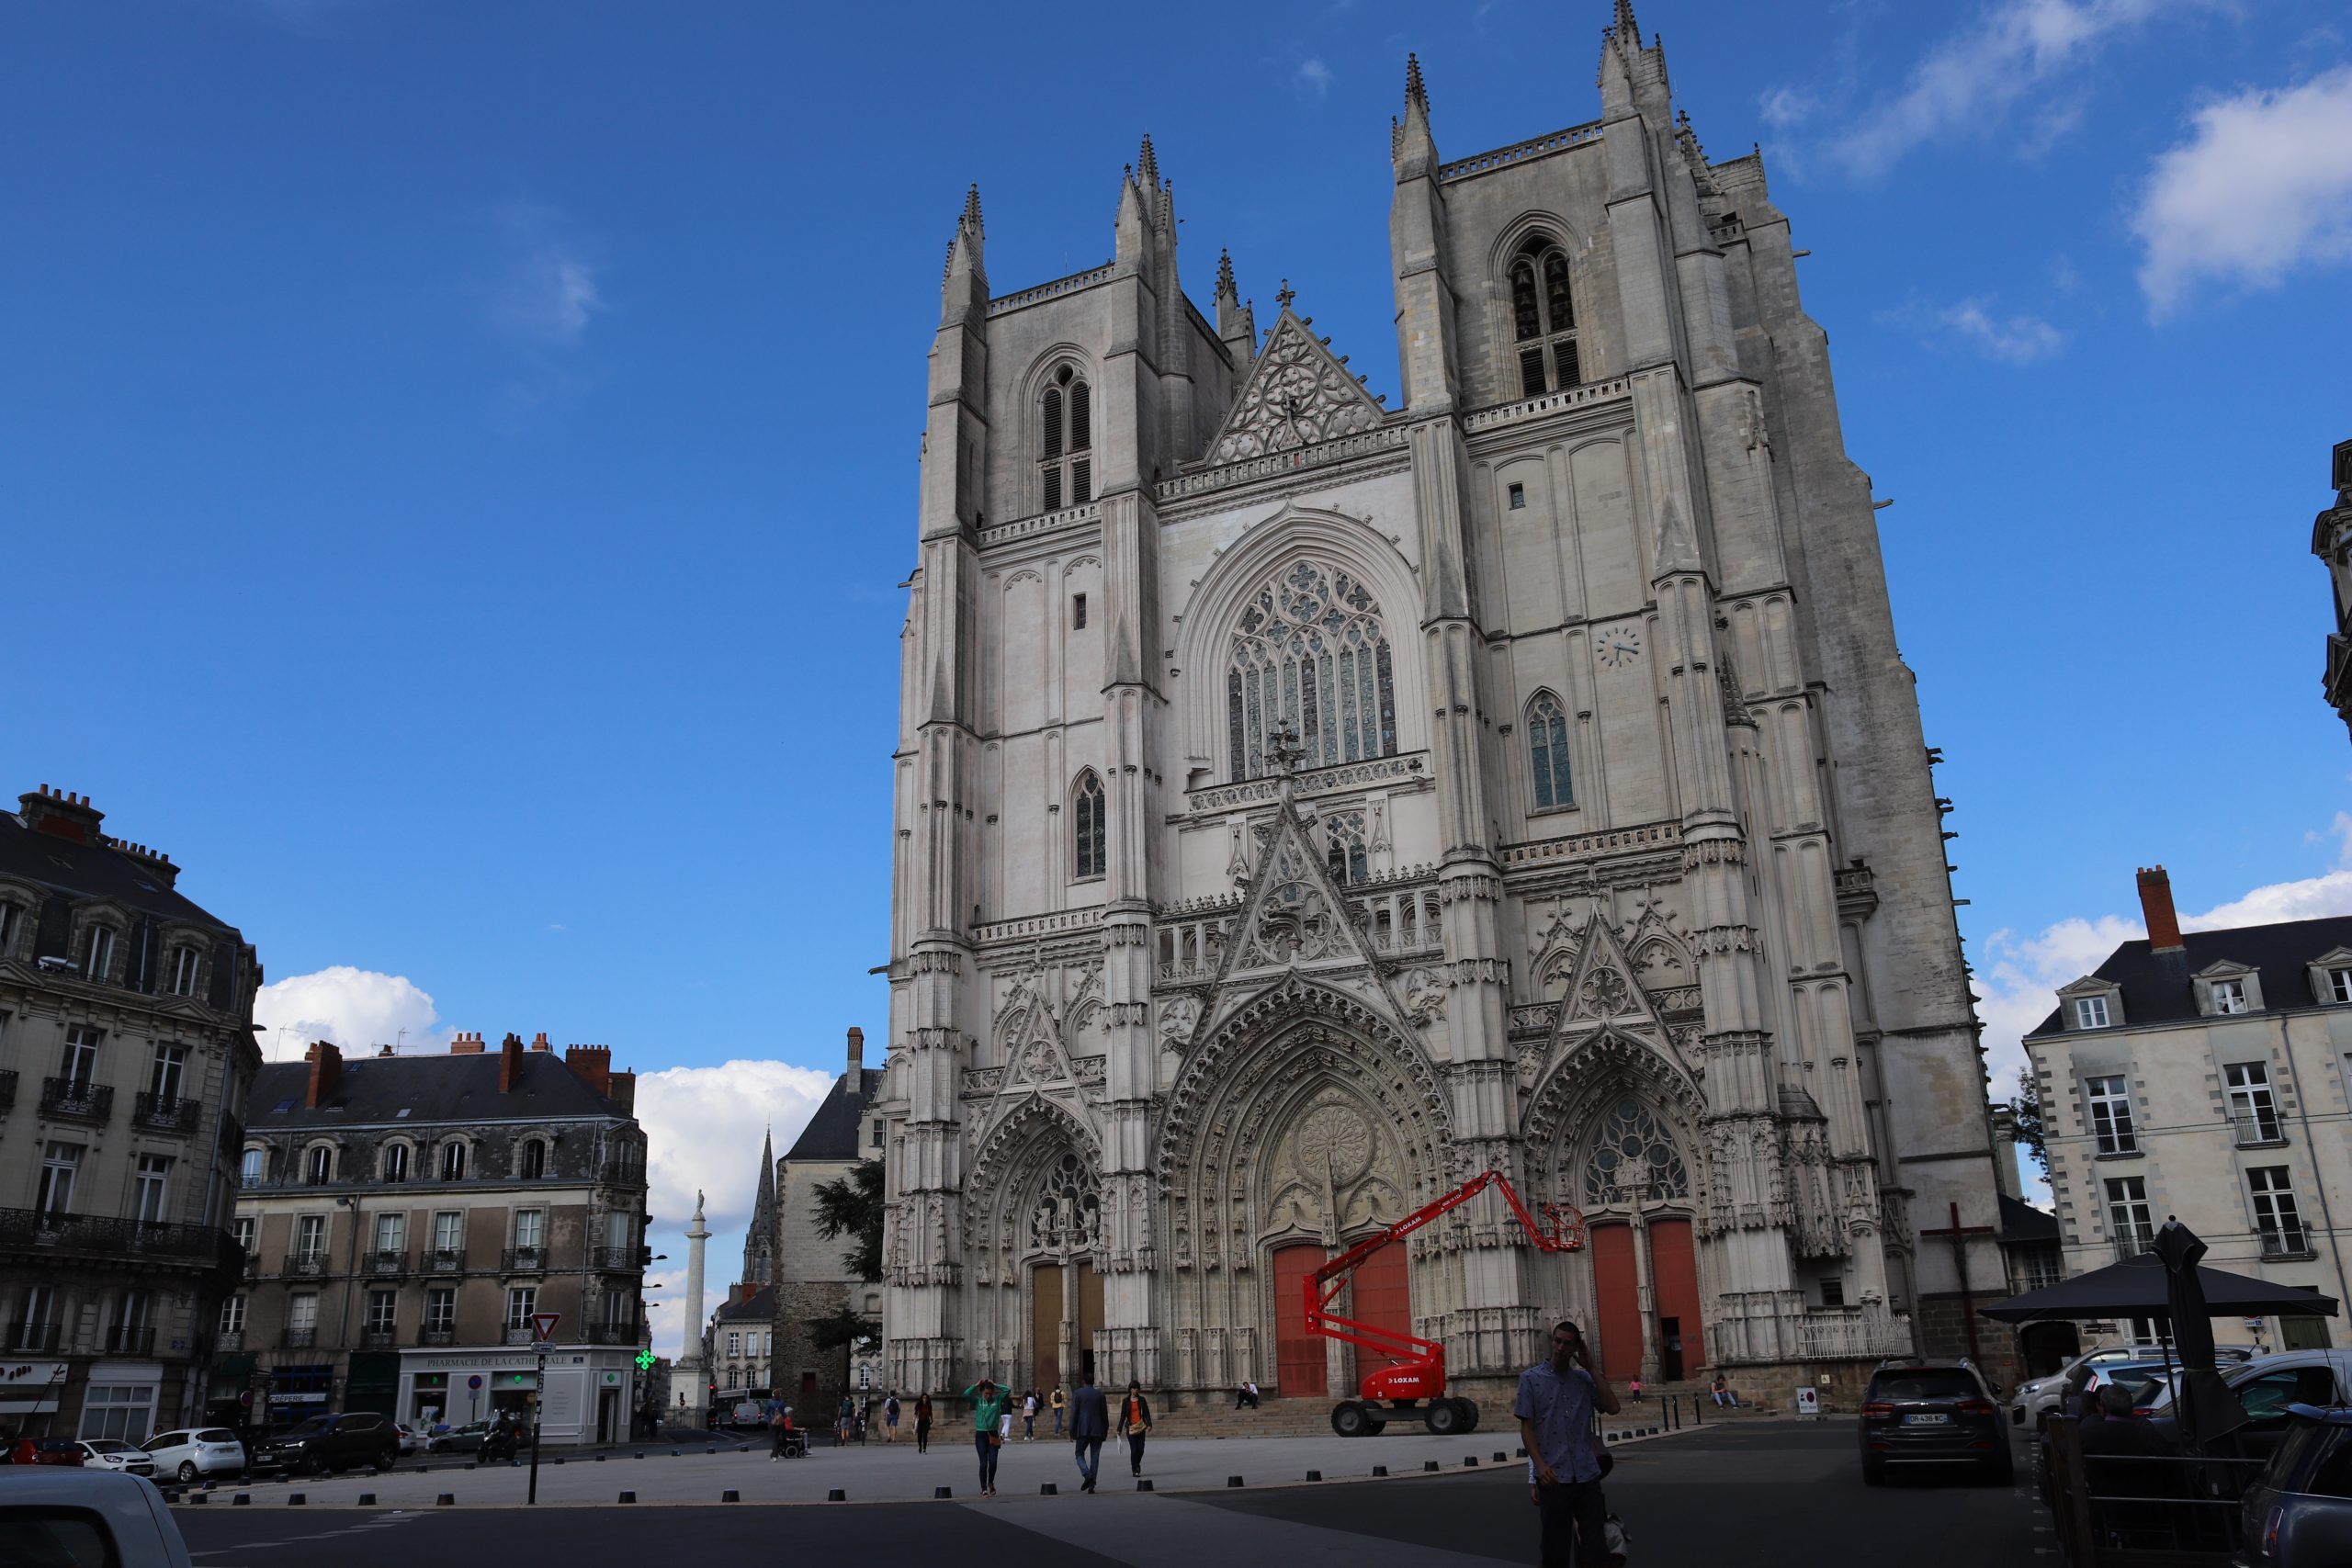 Cathedral of St. Peter and St Paul of Nantes